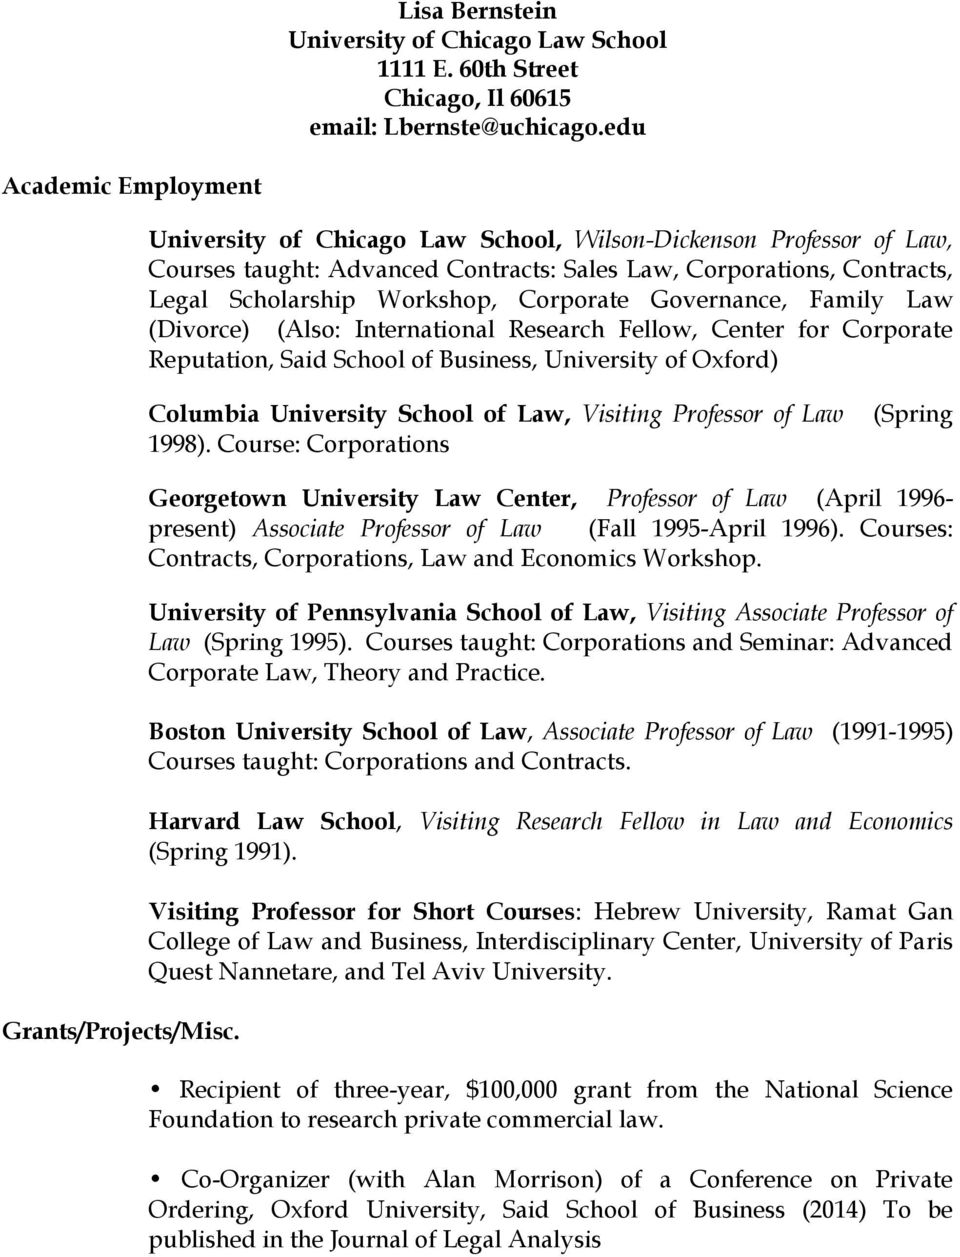 Corporate Governance, Family Law (Divorce) (Also: International Research Fellow, Center for Corporate Reputation, Said School of Business, University of Oxford) Columbia University School of Law,